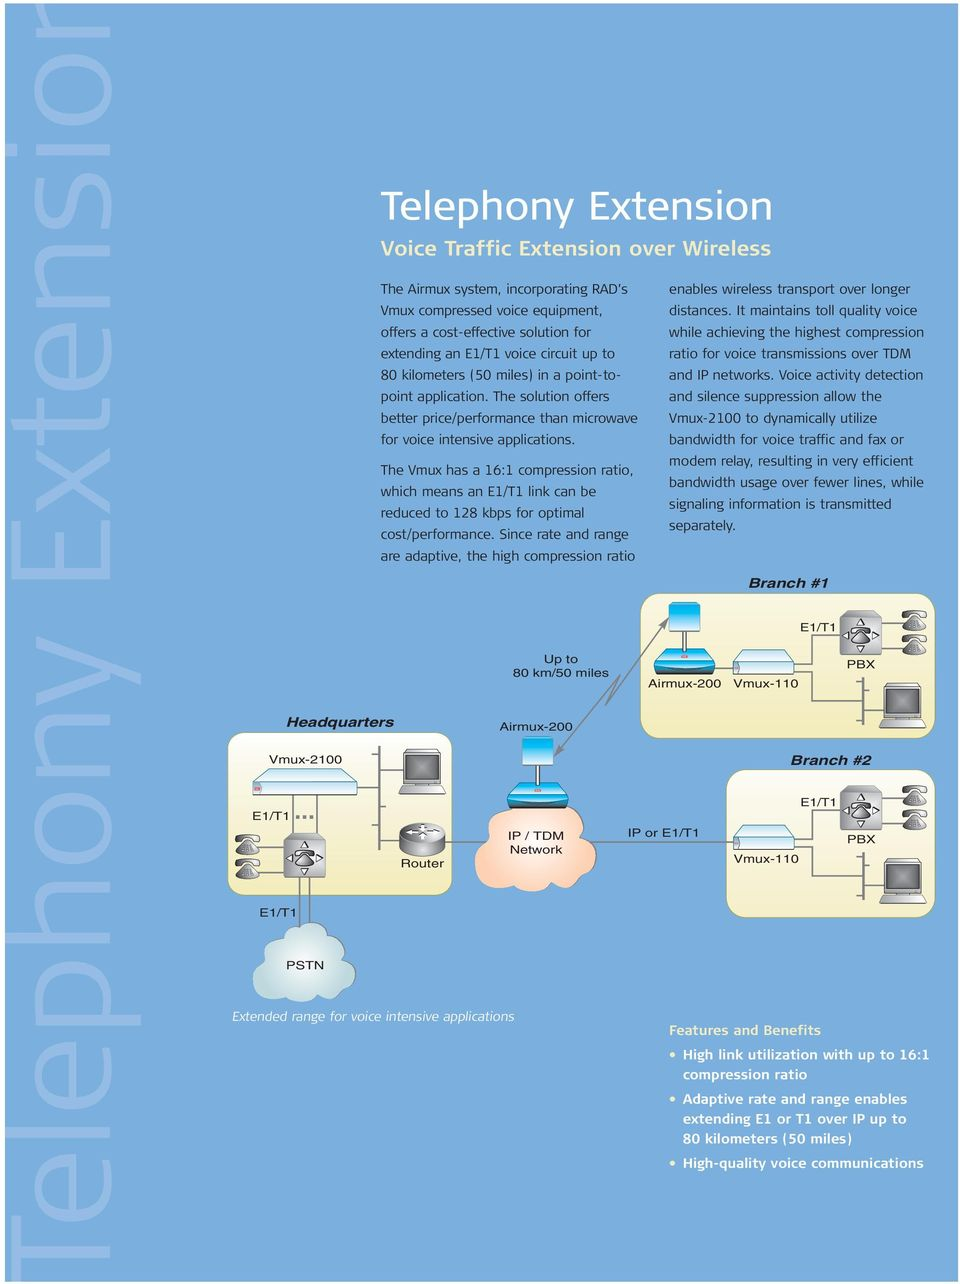 The solution offers better price/performance than microwave for voice intensive applications.